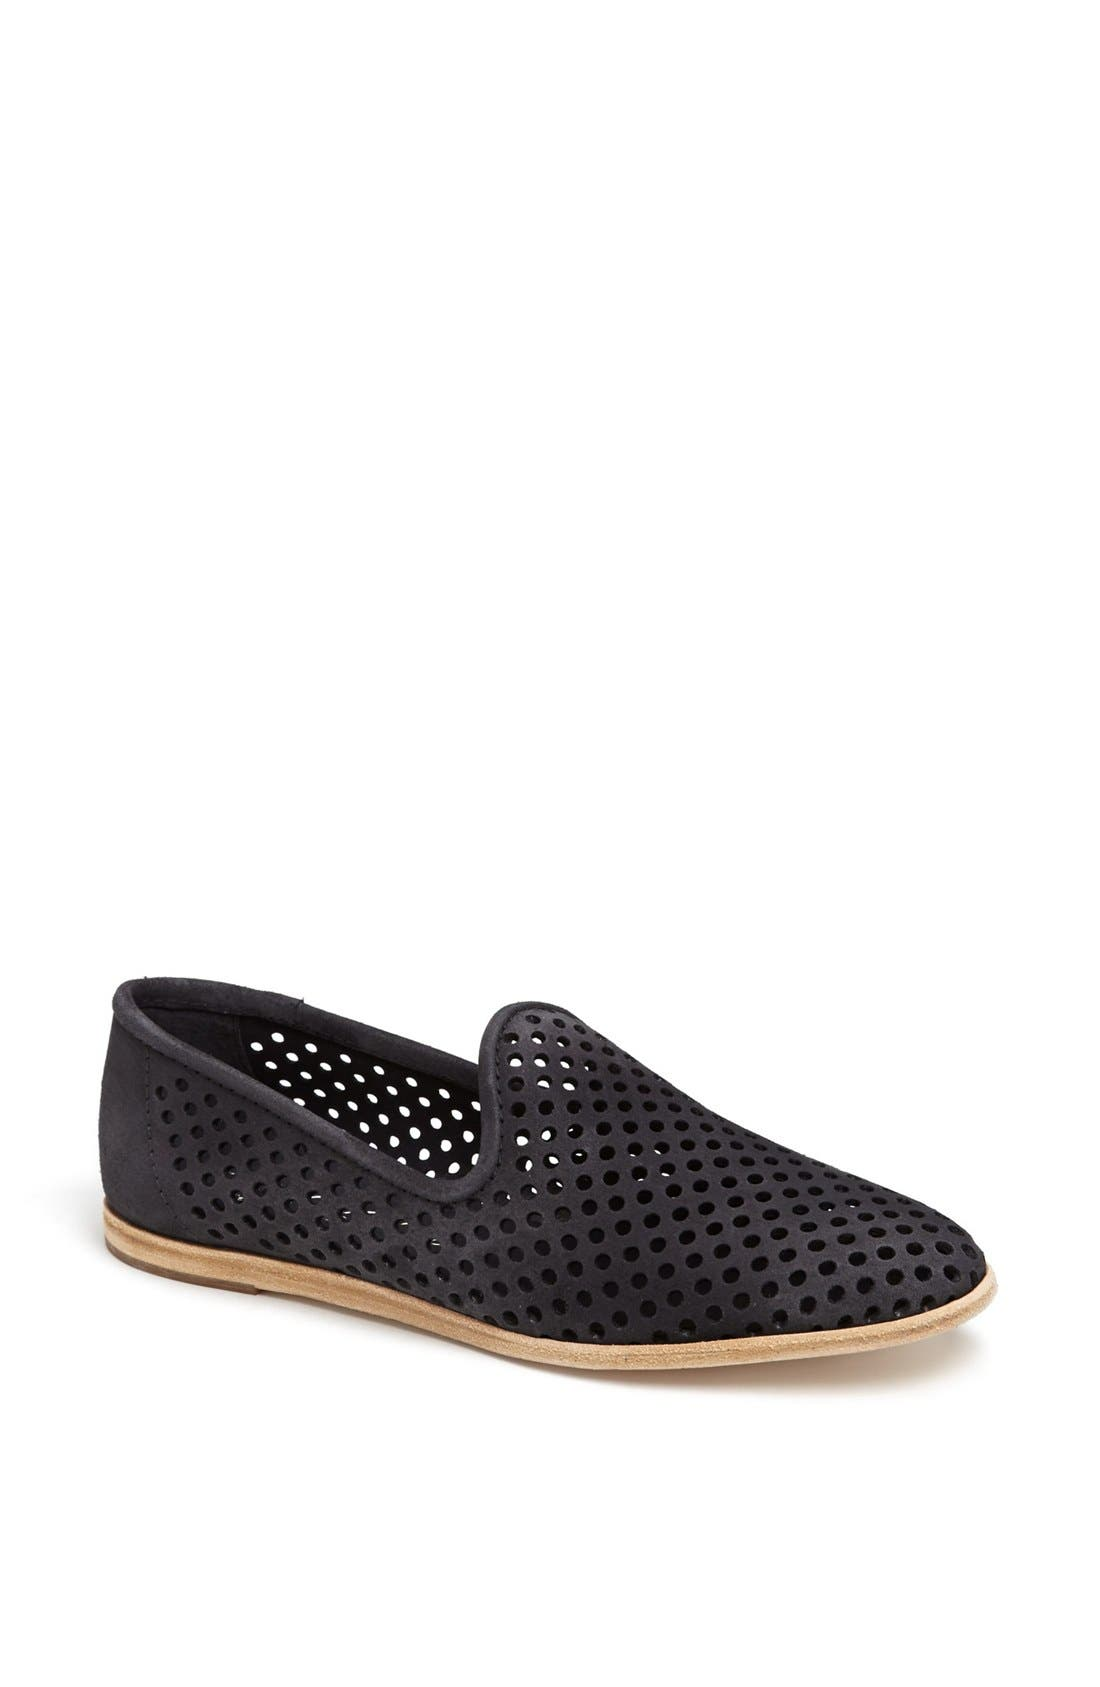 Alternate Image 1 Selected - Pedro Garcia 'Yasmin' Perforated Leather Slip-On